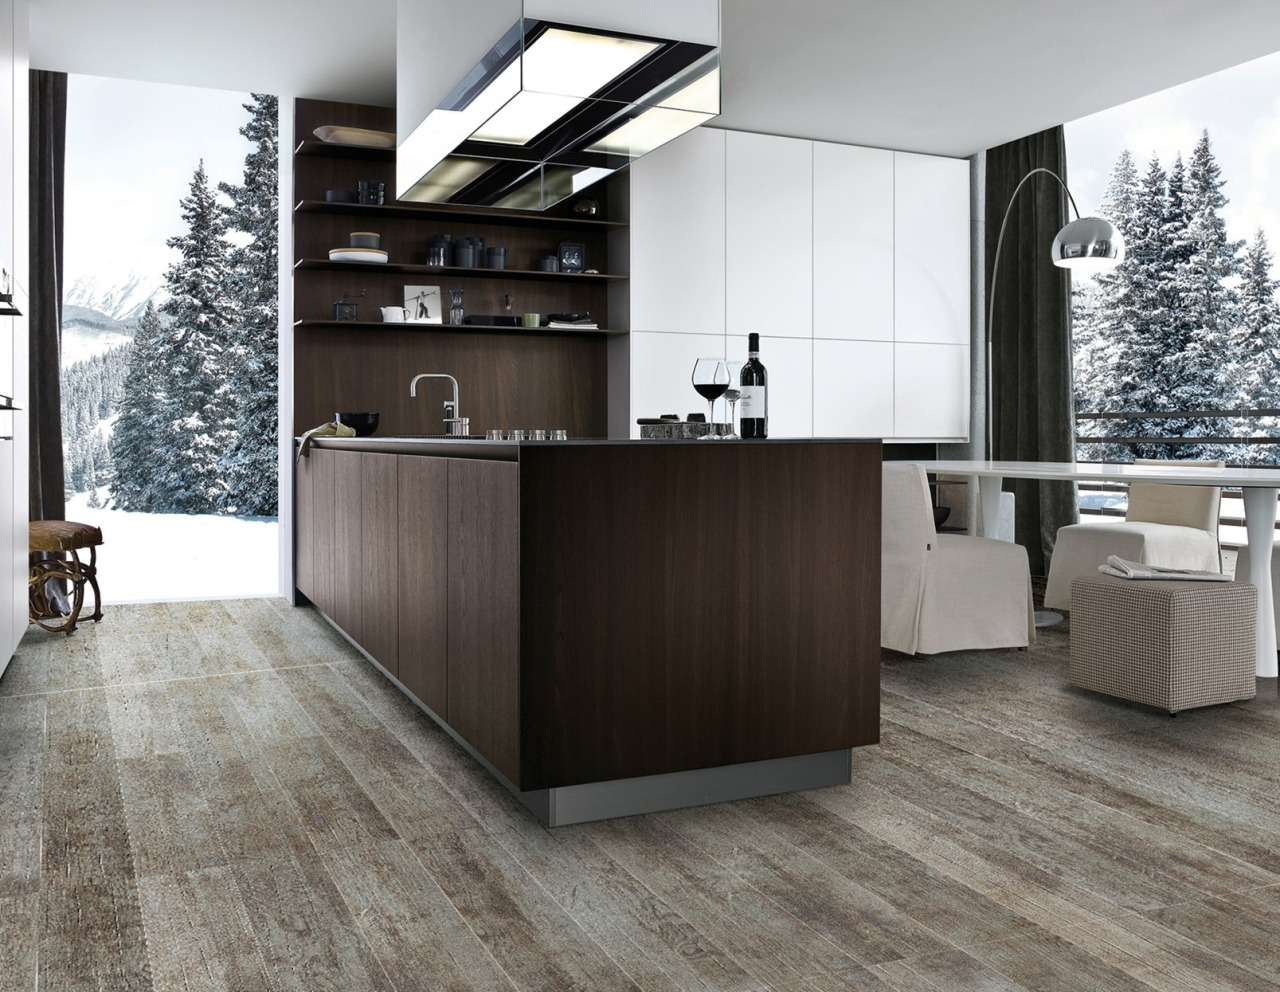 archiproducts :    ESSENCE by Romax Tiles Australia  is a remarkable replication of hand-worked, time-worn wood only possible using a very high definition inkjet technology.   http://bit.ly/1DmJ4WG